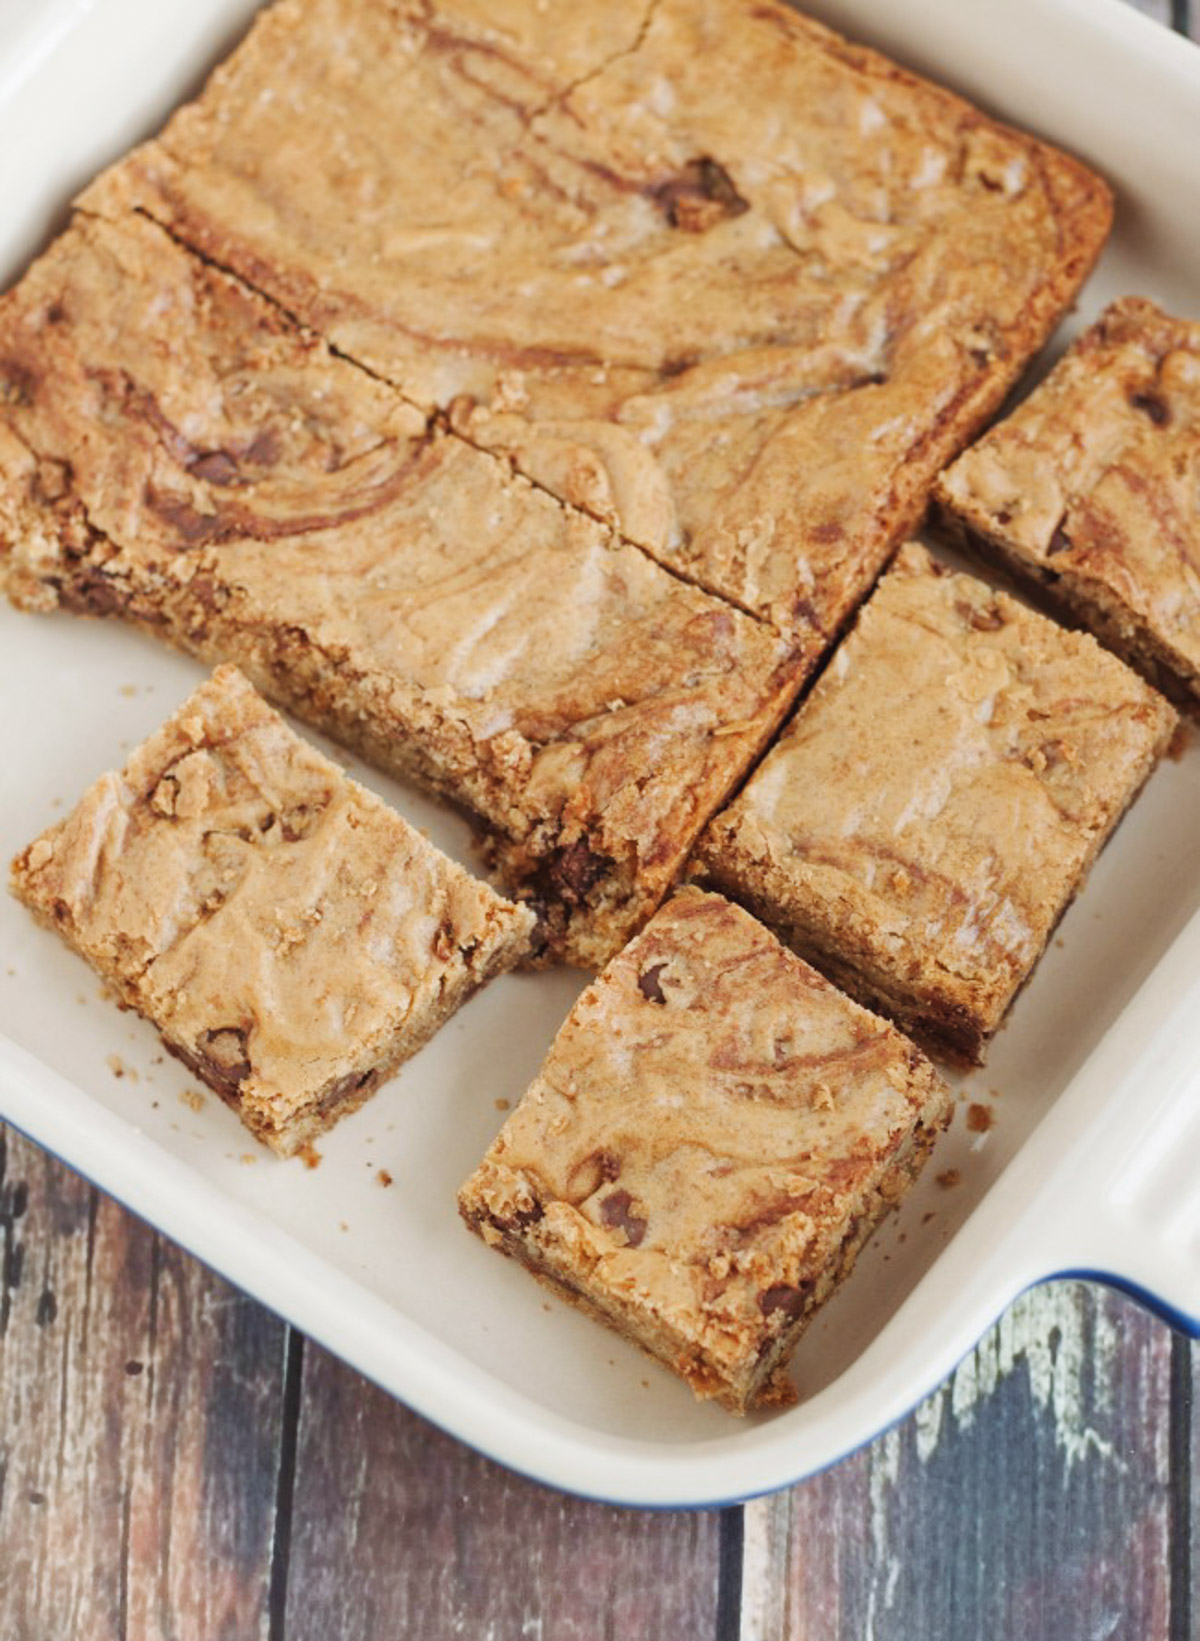 Baking pan with cut blondie bars with chocolate chips cut into squares.